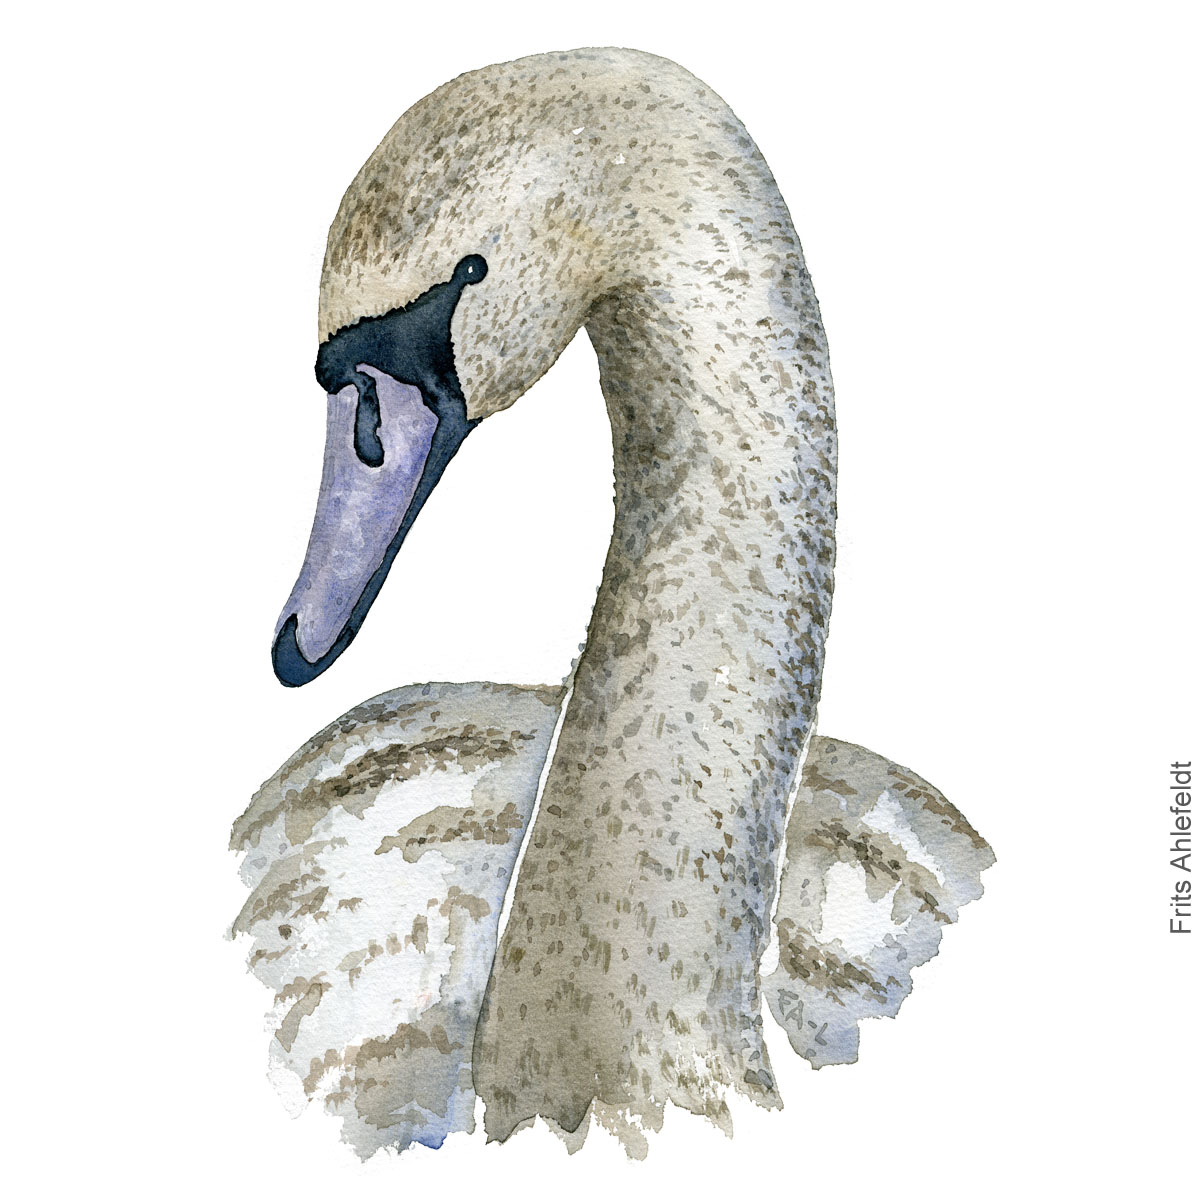 Mute swan young. ung knopsvane akvarel. Watercolor painting by Frits Ahlefeldt